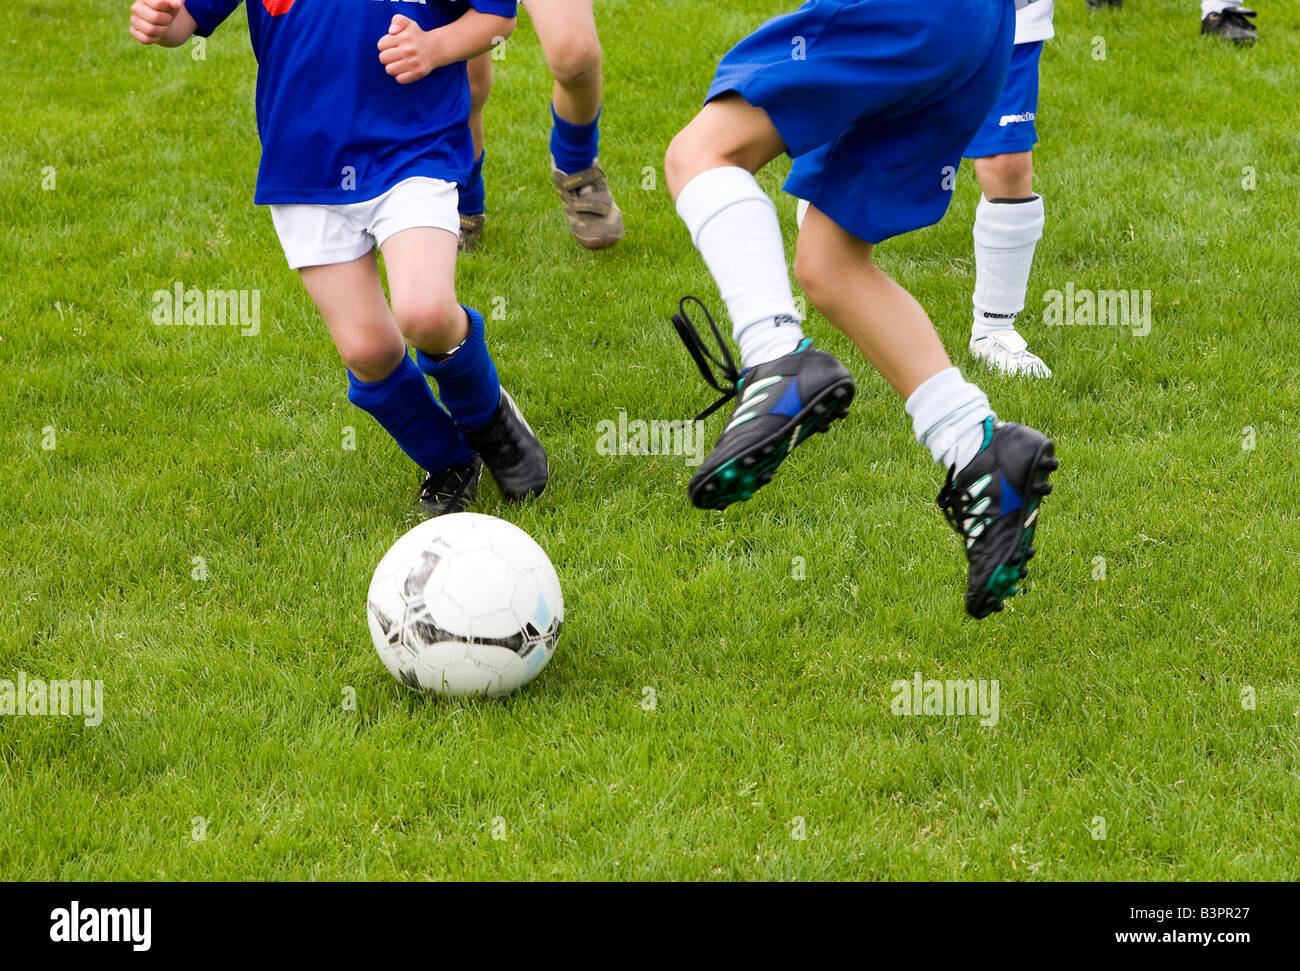 Close-up of players fighting for the ball in a soccer game for children - Stock Image